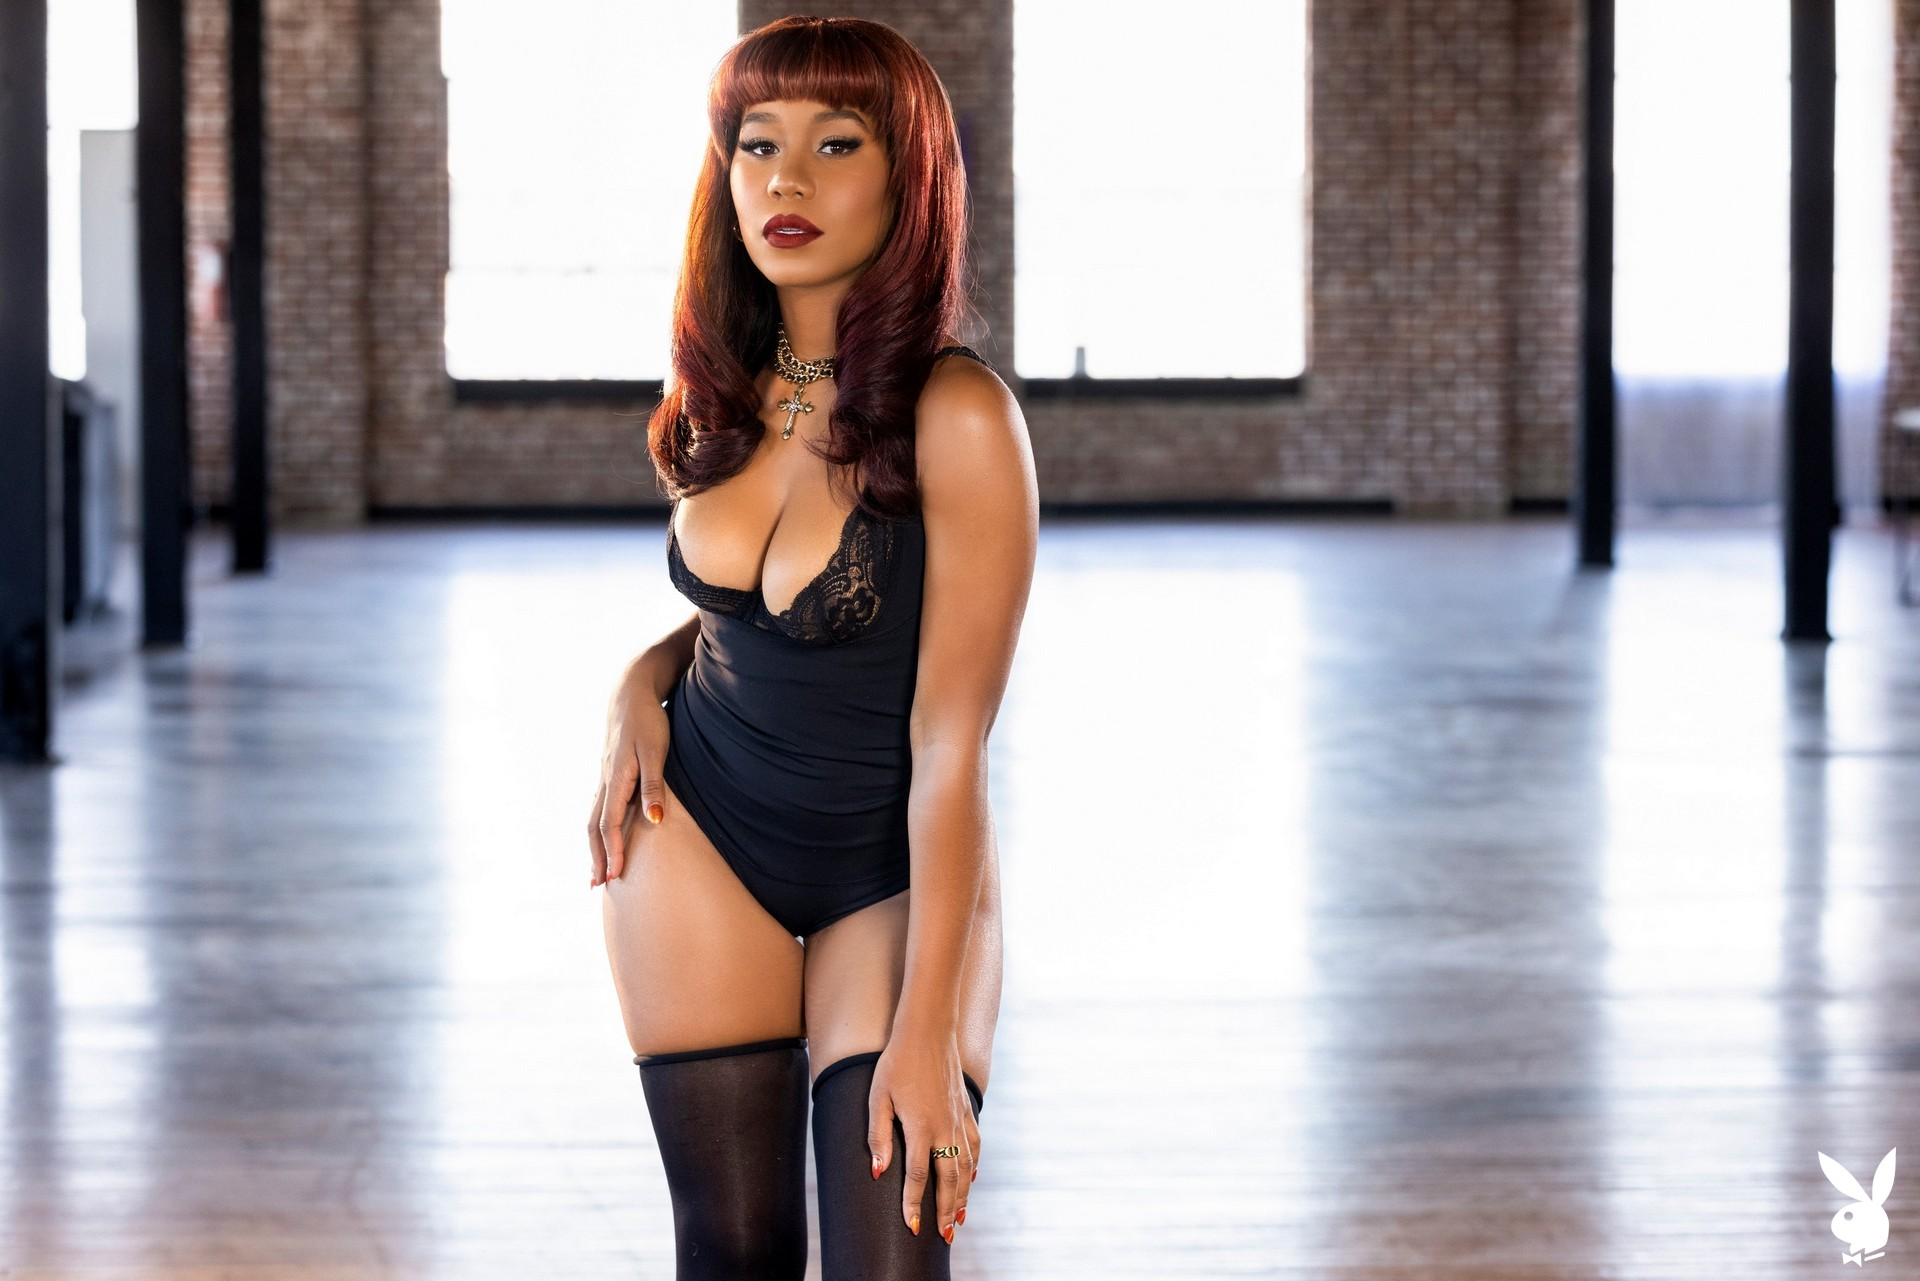 Jenna Foxx In Filled With Desire Playboy Plus (1)